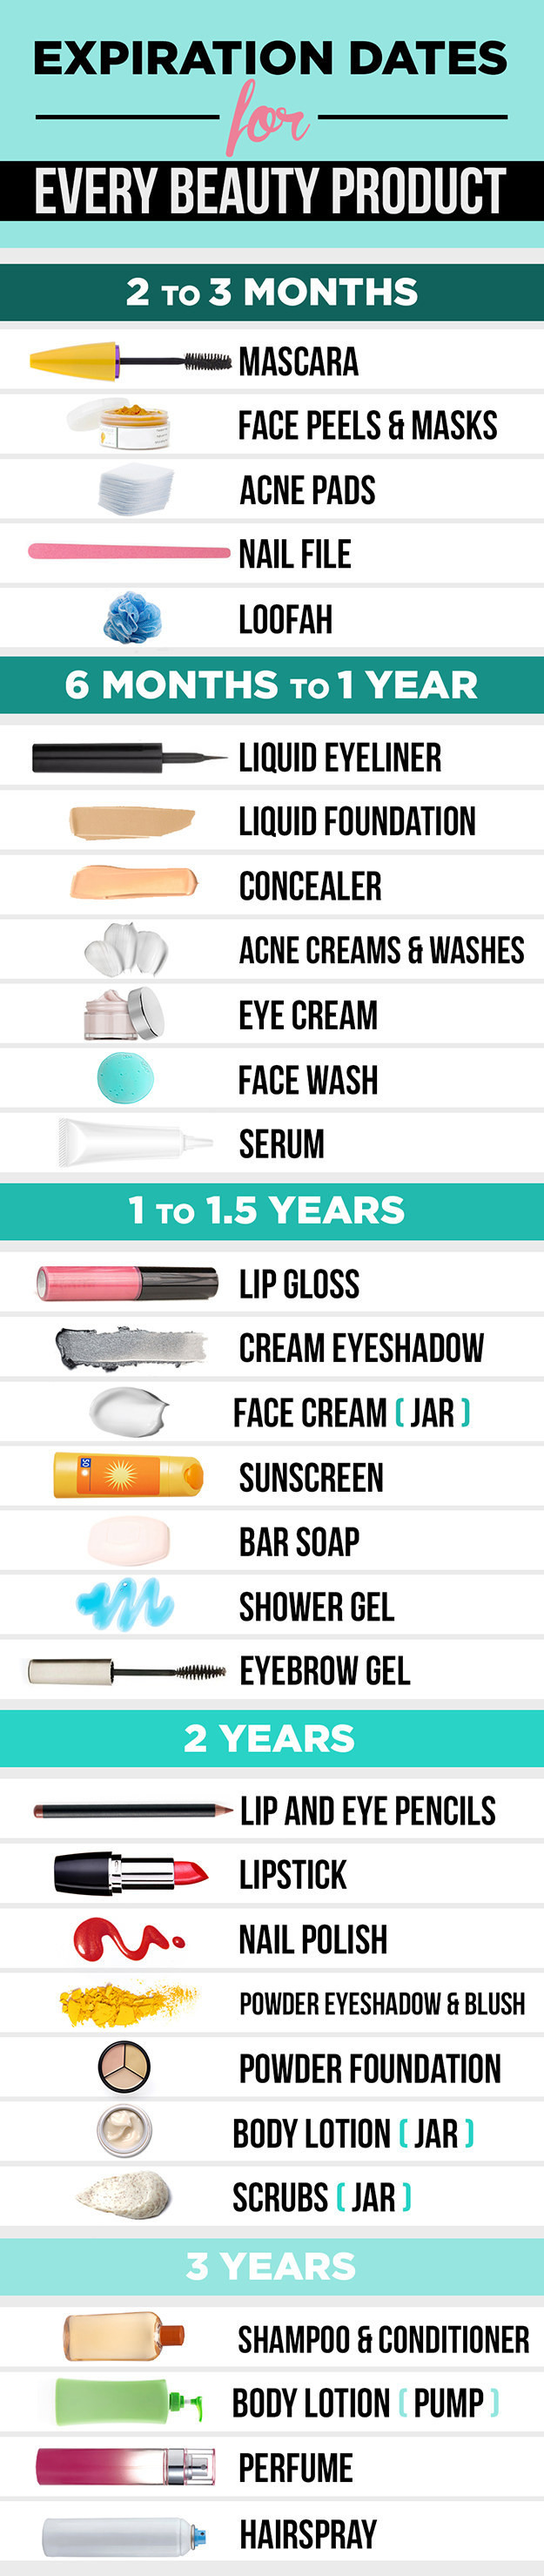 expiration dates for beauty products